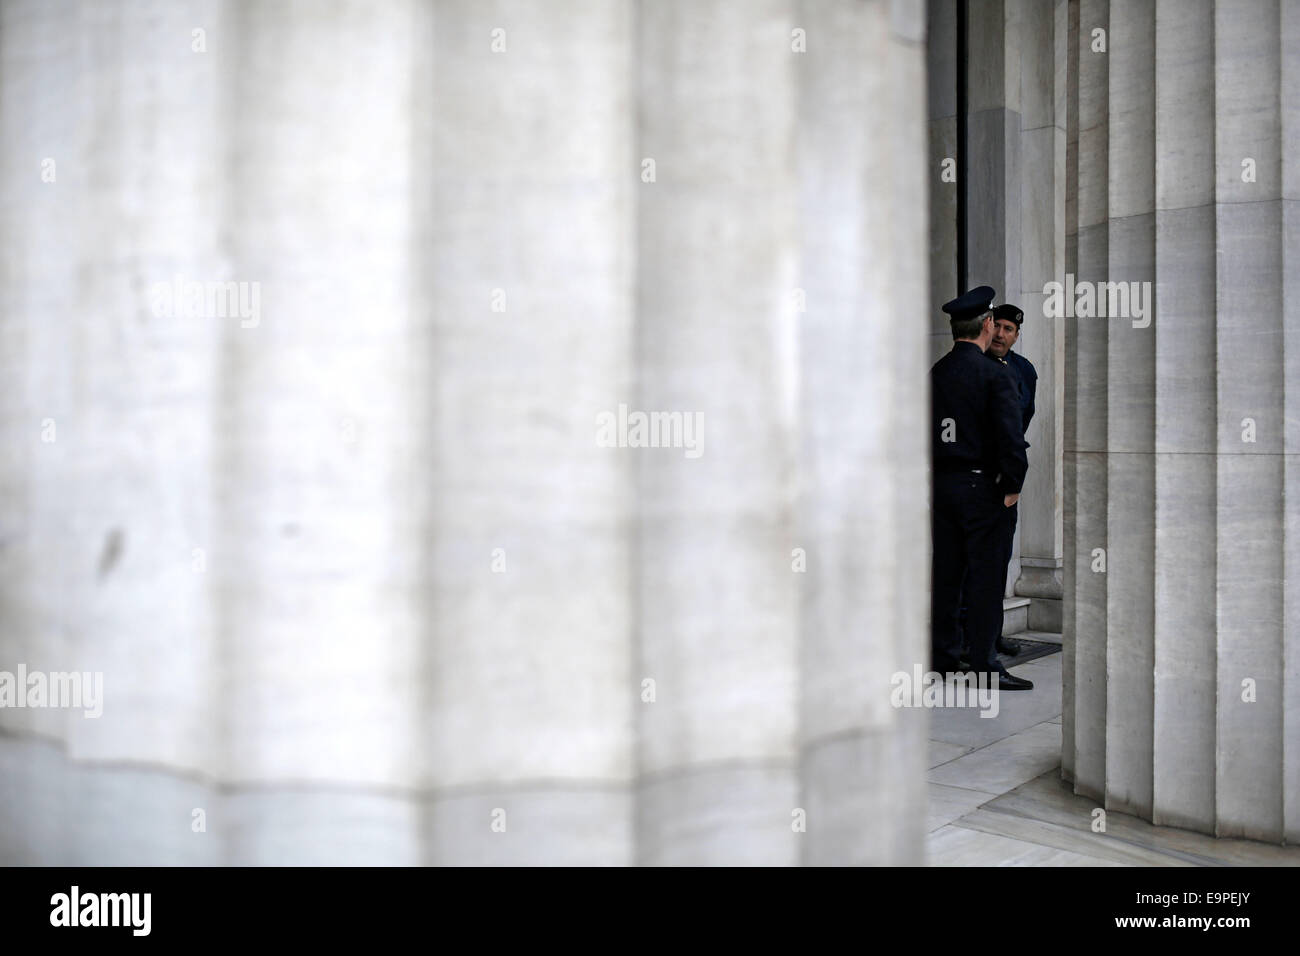 Thessaloniki, Greece. 31st Oct, 2014. Police officers guard the protest outside the Bank of Greece branch. On the - Stock Image